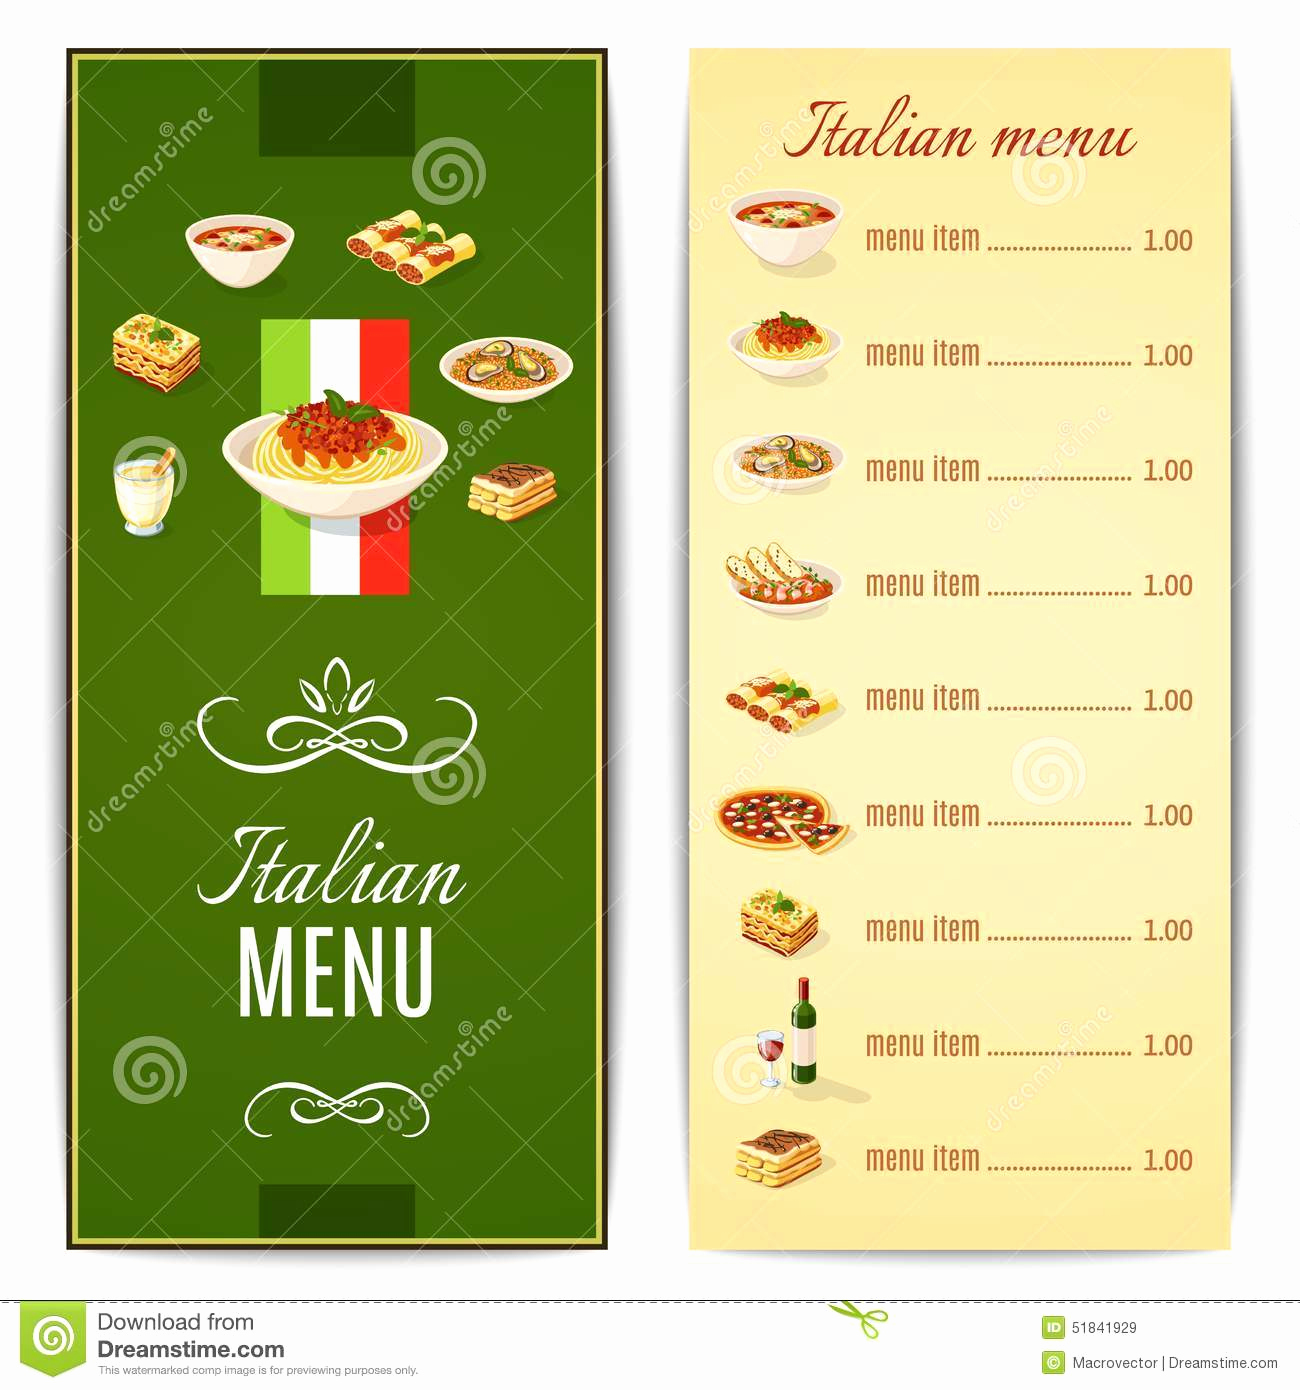 Italian Restaurant Menu Template Elegant Italian Food Menu Stock Vector Image